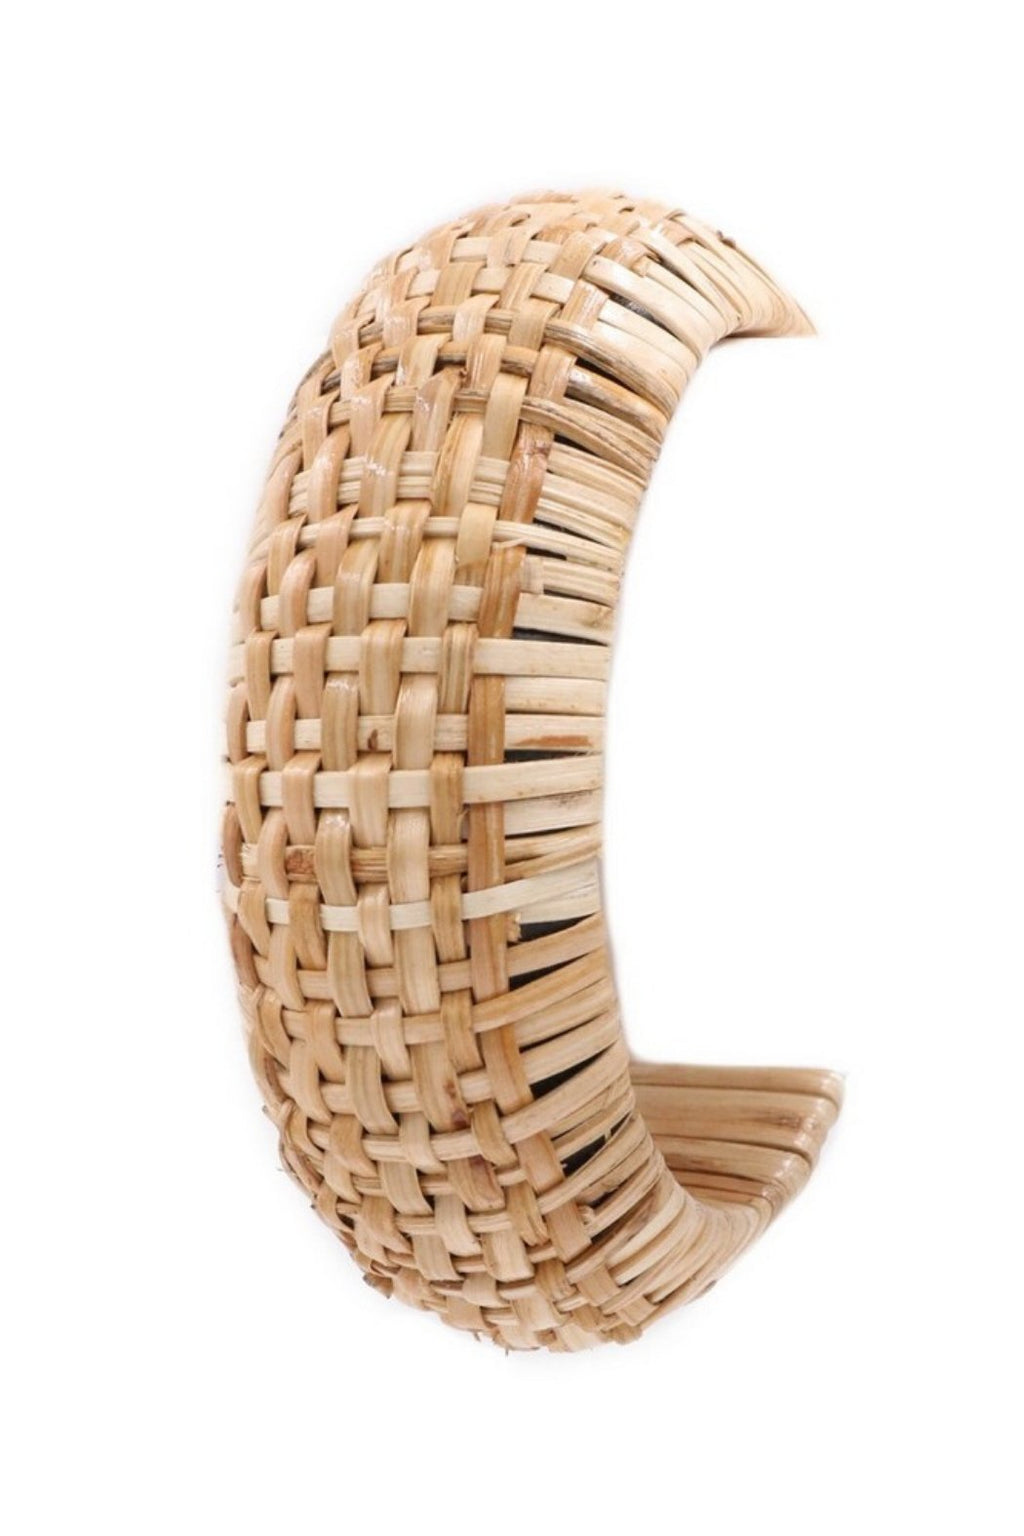 Threaded Straw Bangle Bracelet-Article & Thread Boutique